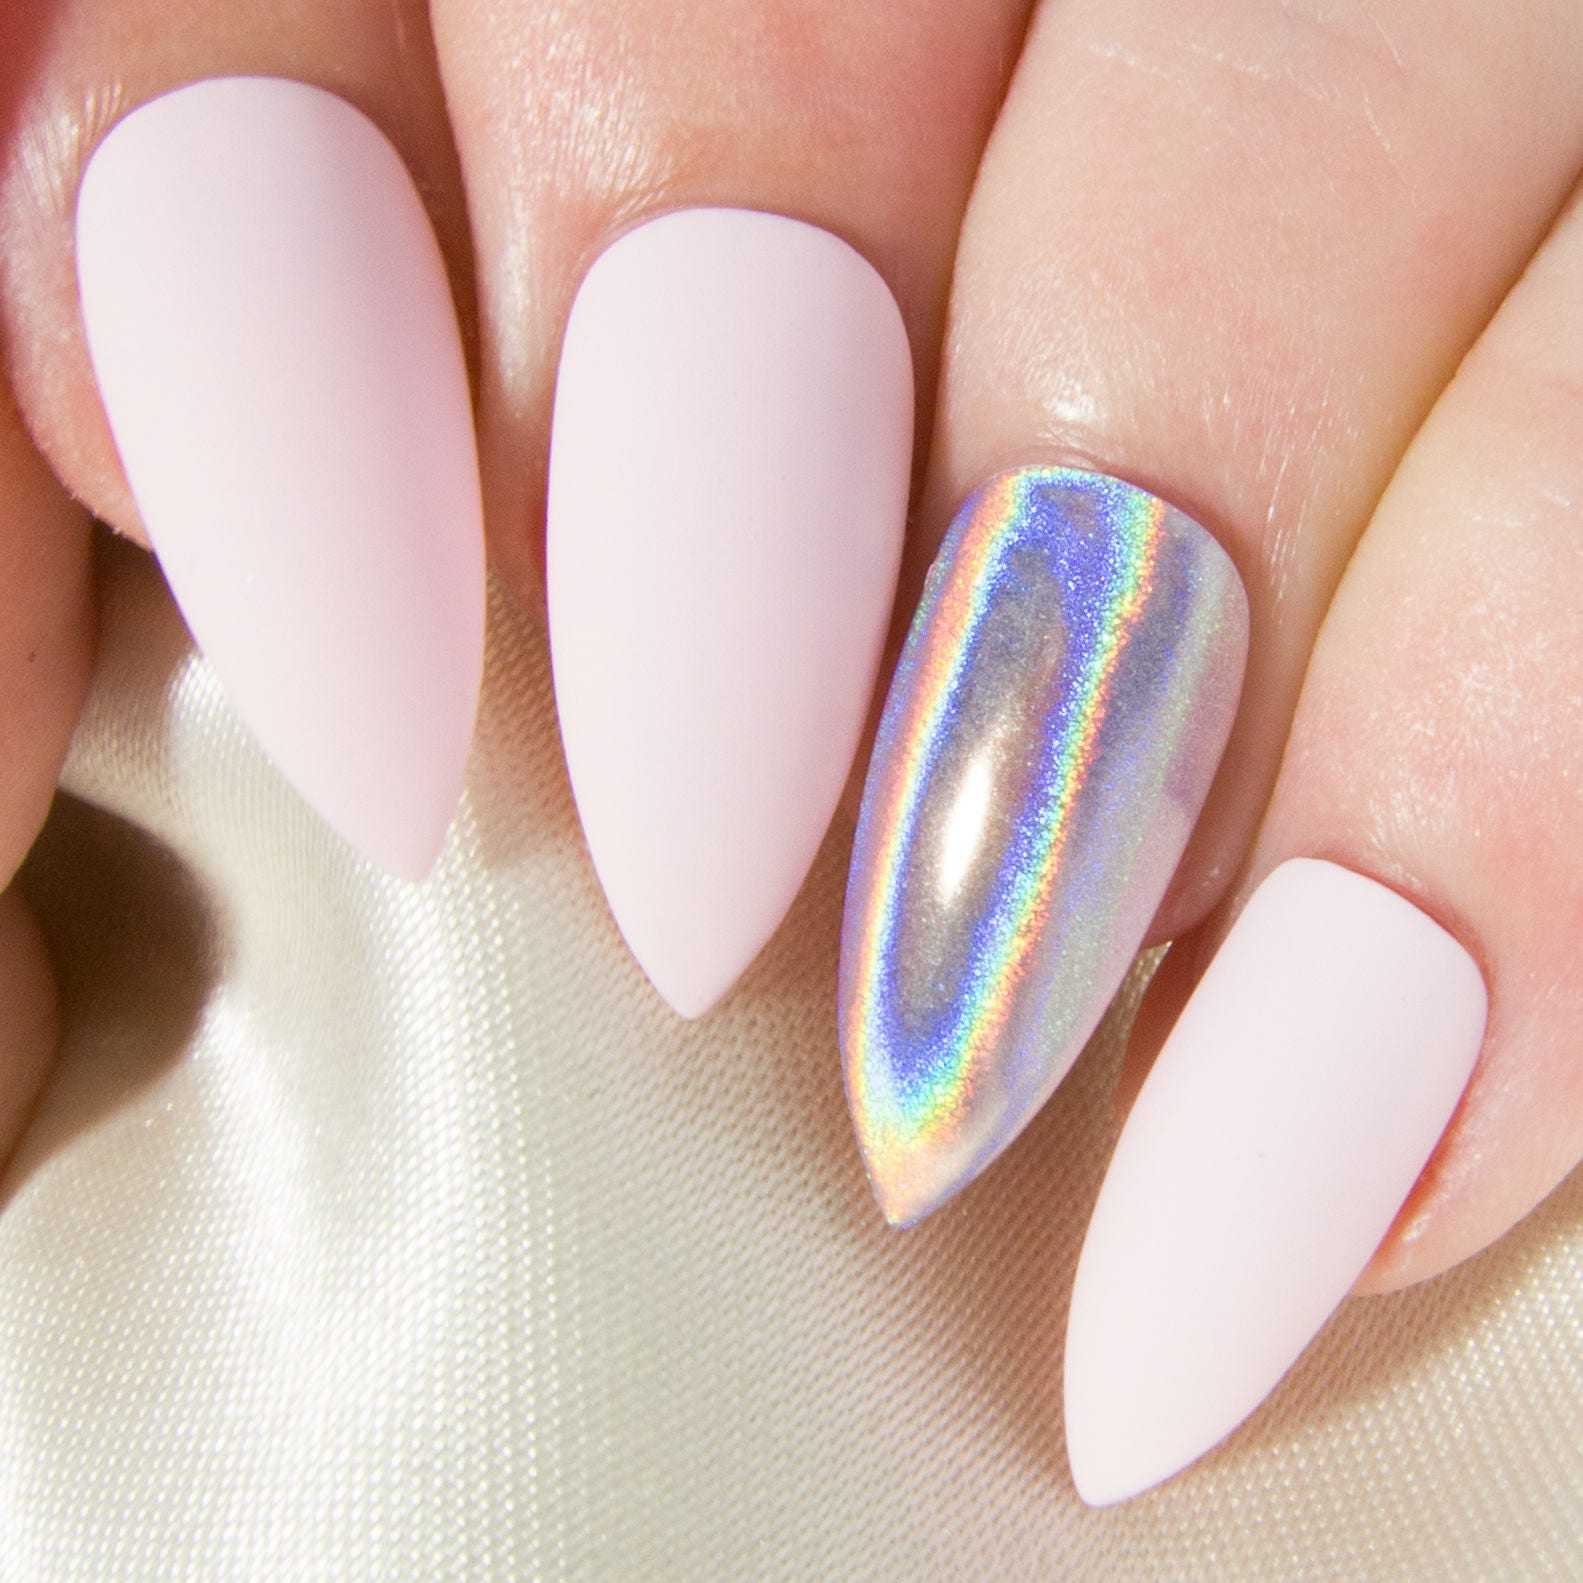 Fake Nails: Stiletto Press On Nails